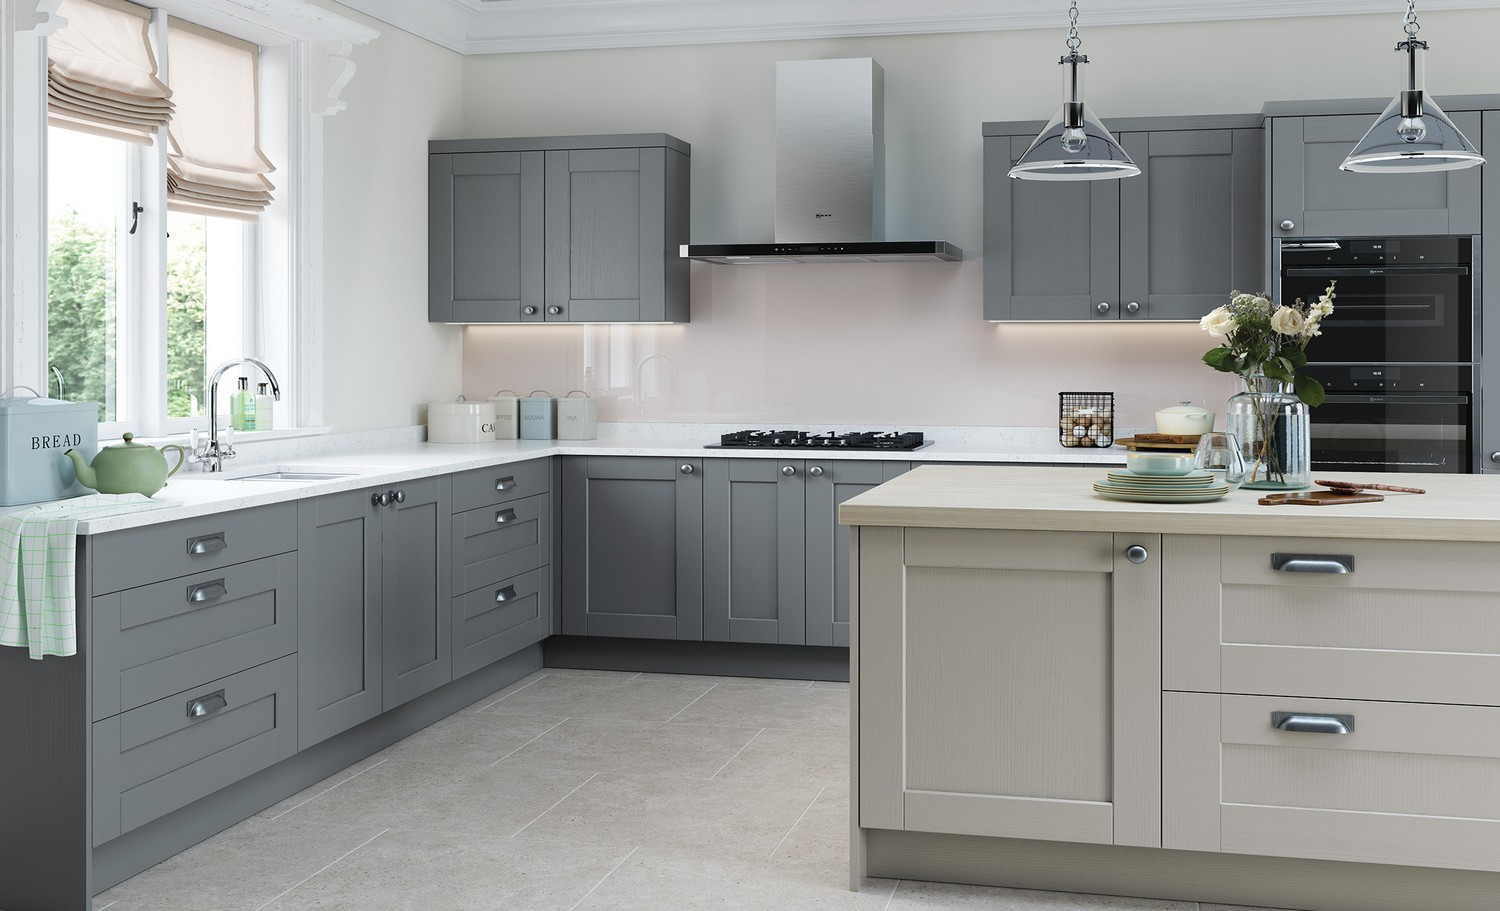 Contemporary Kitchens Liverpool Cleveland Kitchens - Slate grey kitchen units